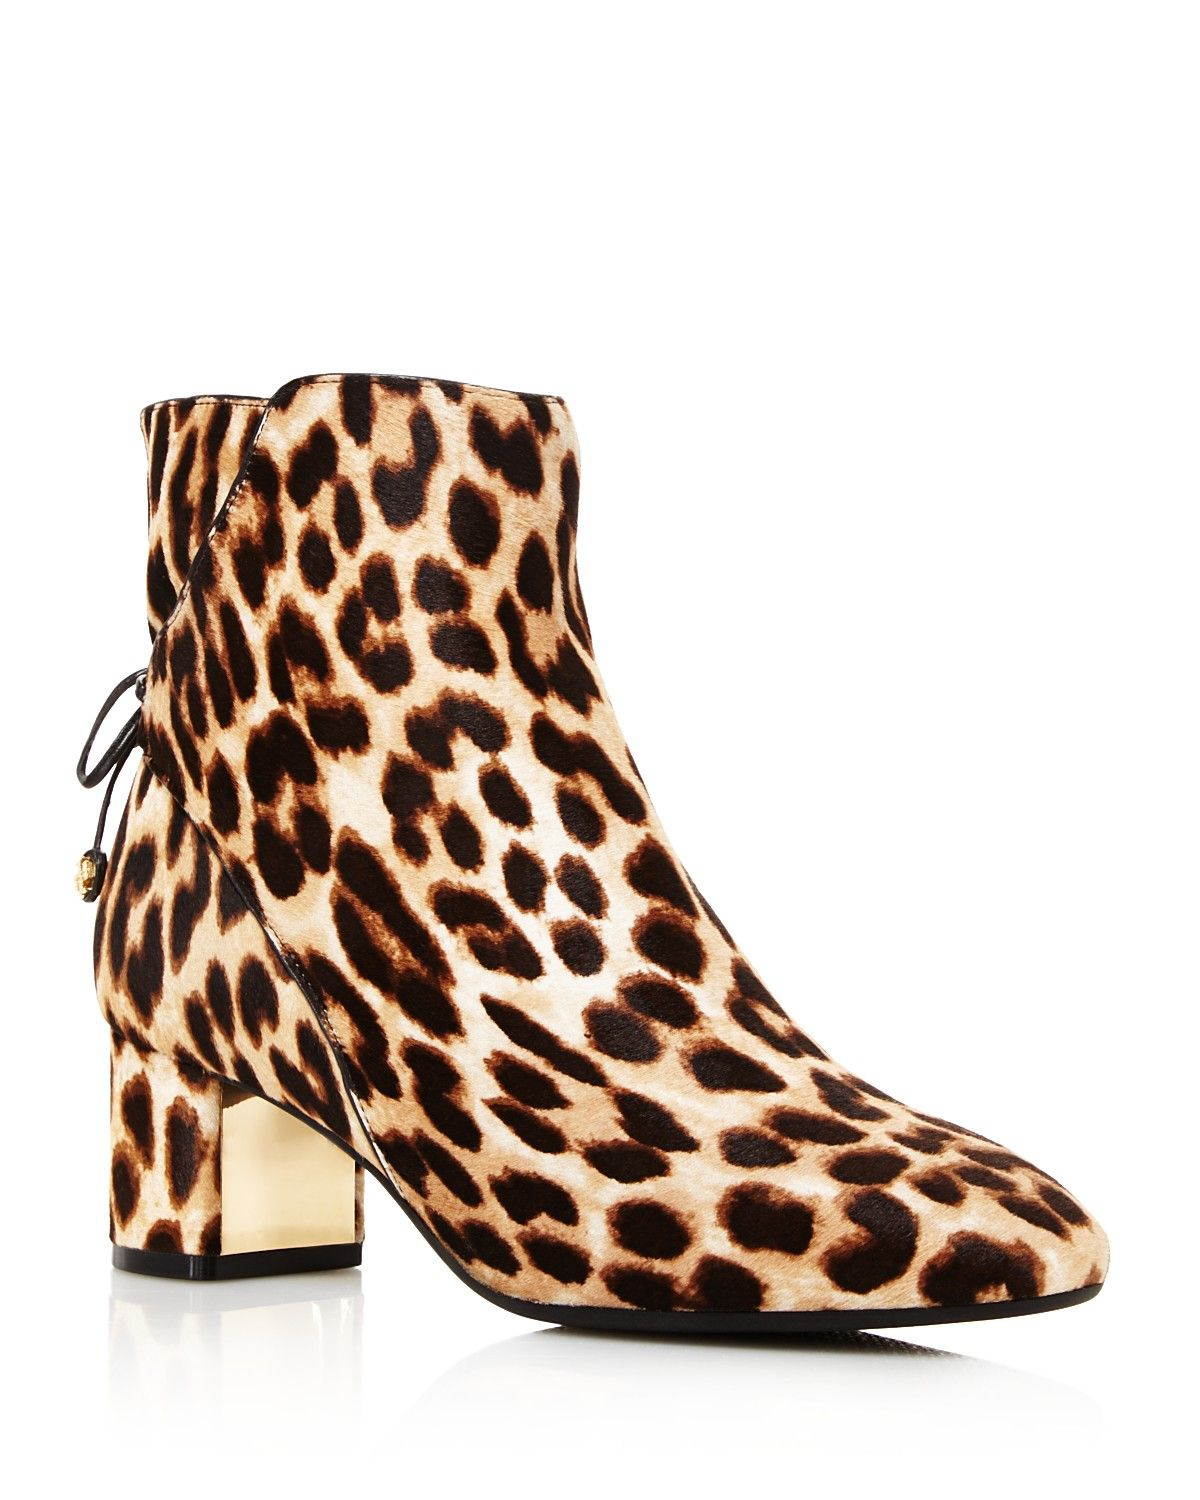 16d4f67c5930 kate spade new york Betsie Too Fringed Leopard-Print Calf Hair Ankle Boots